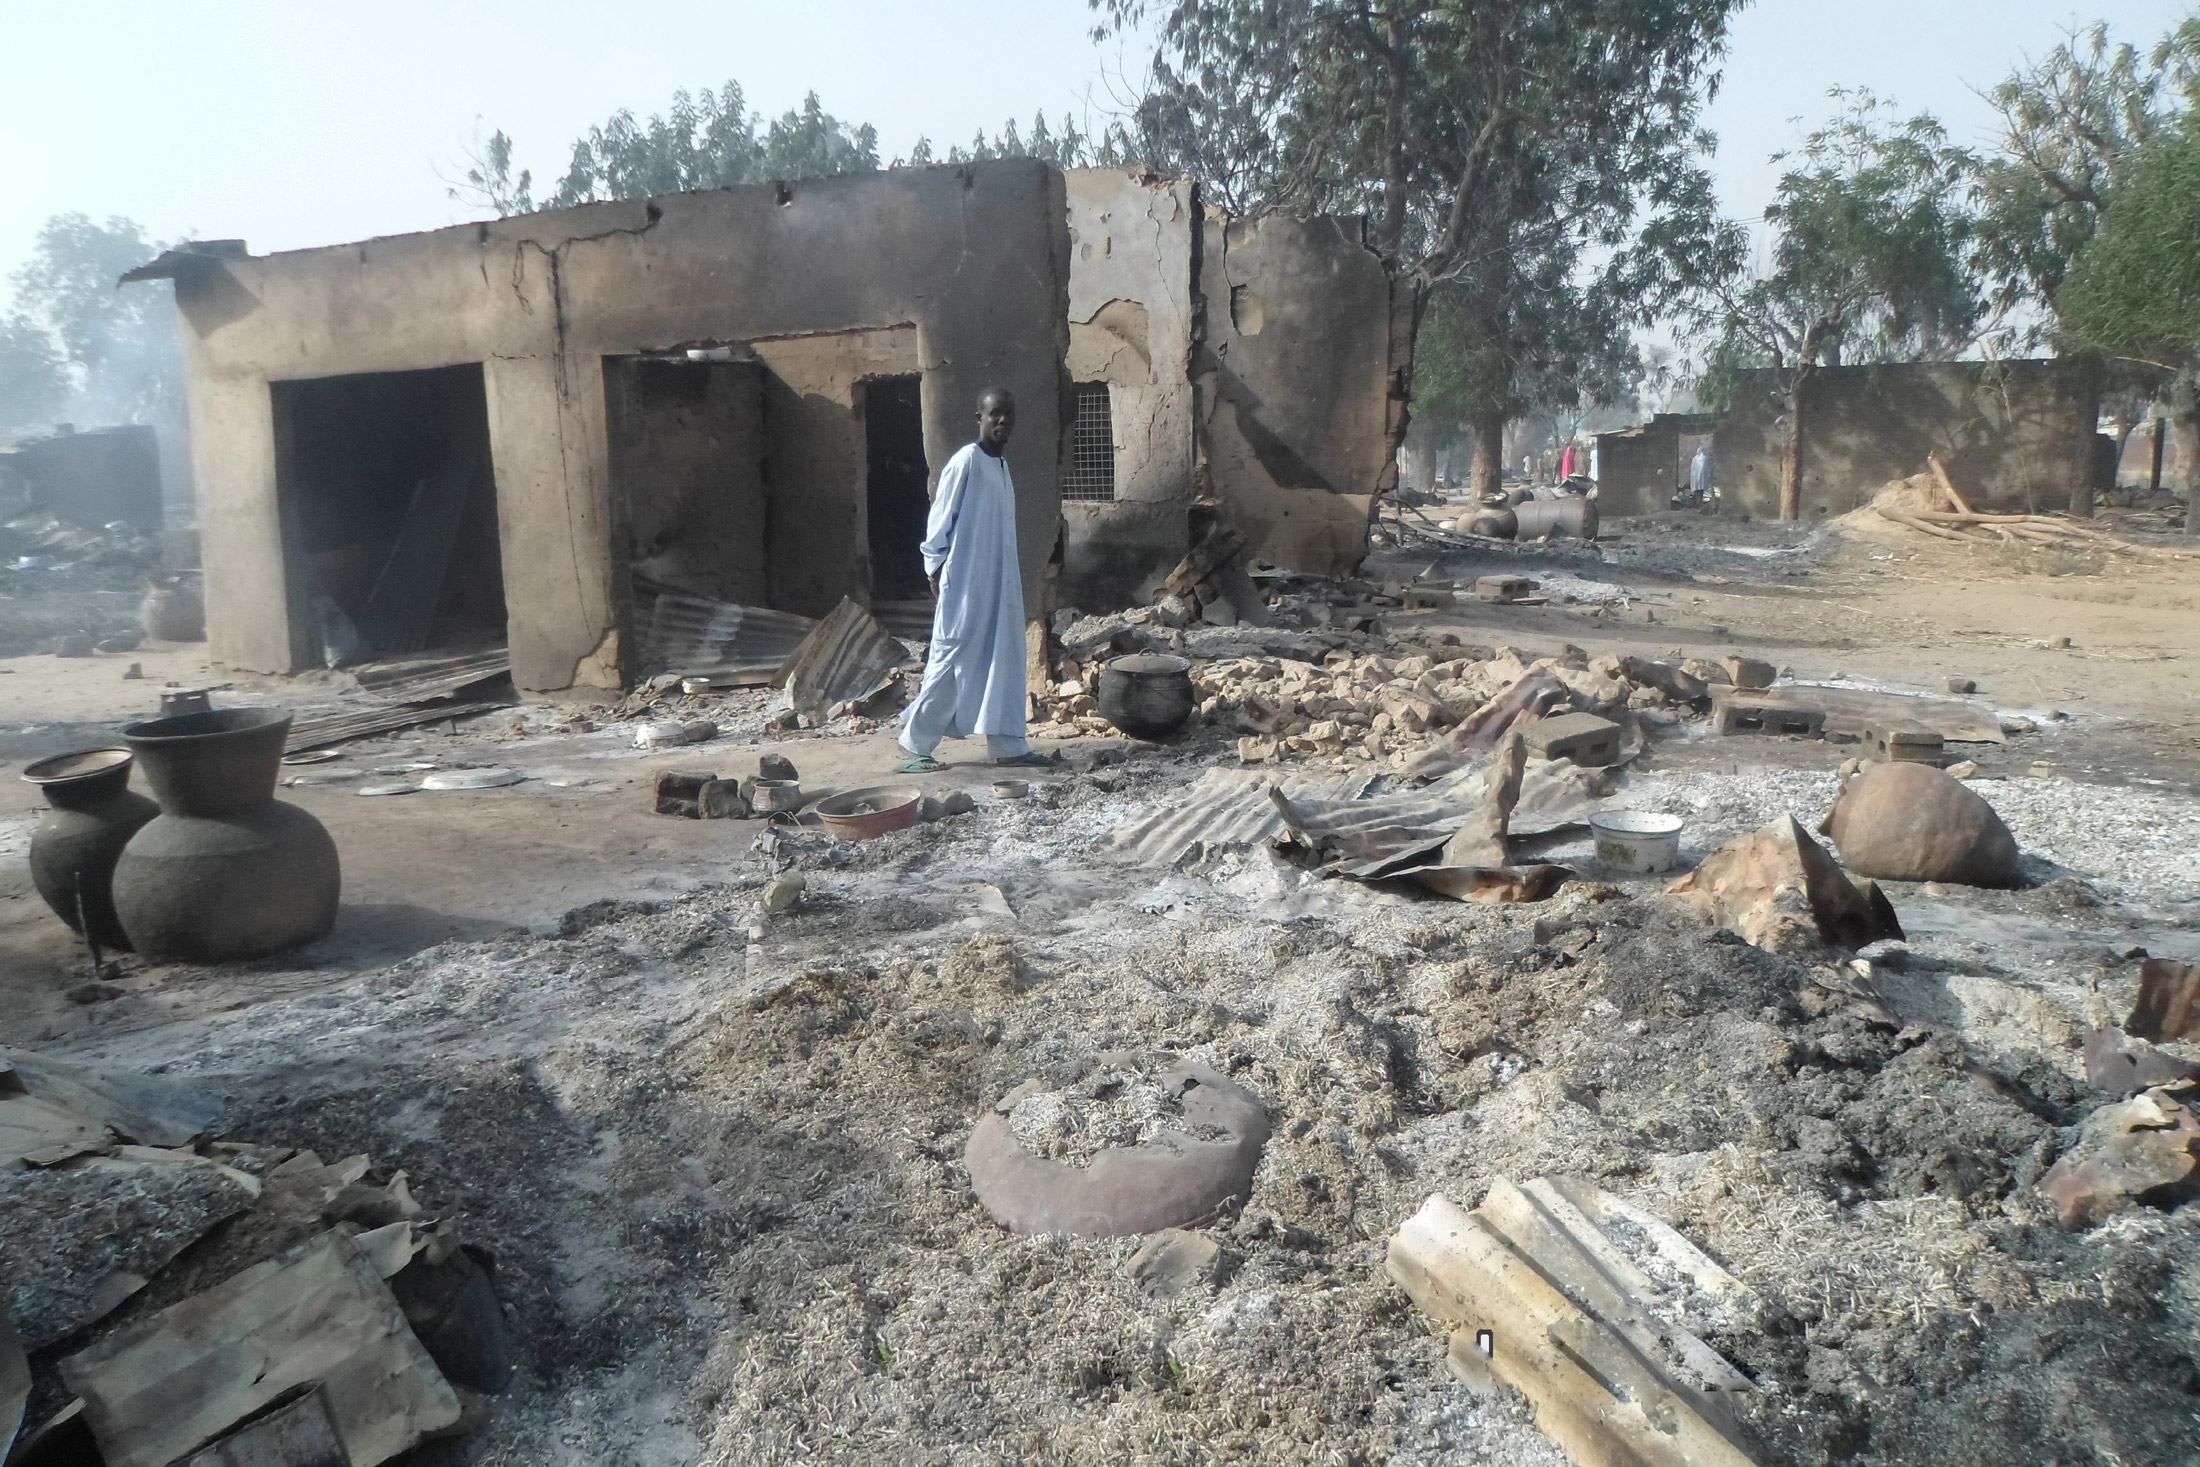 A man walks past burnt out houses following an attack by Boko Haram in the village of Dalori near Maiduguri, Nigeria, Jan. 31, 2016.